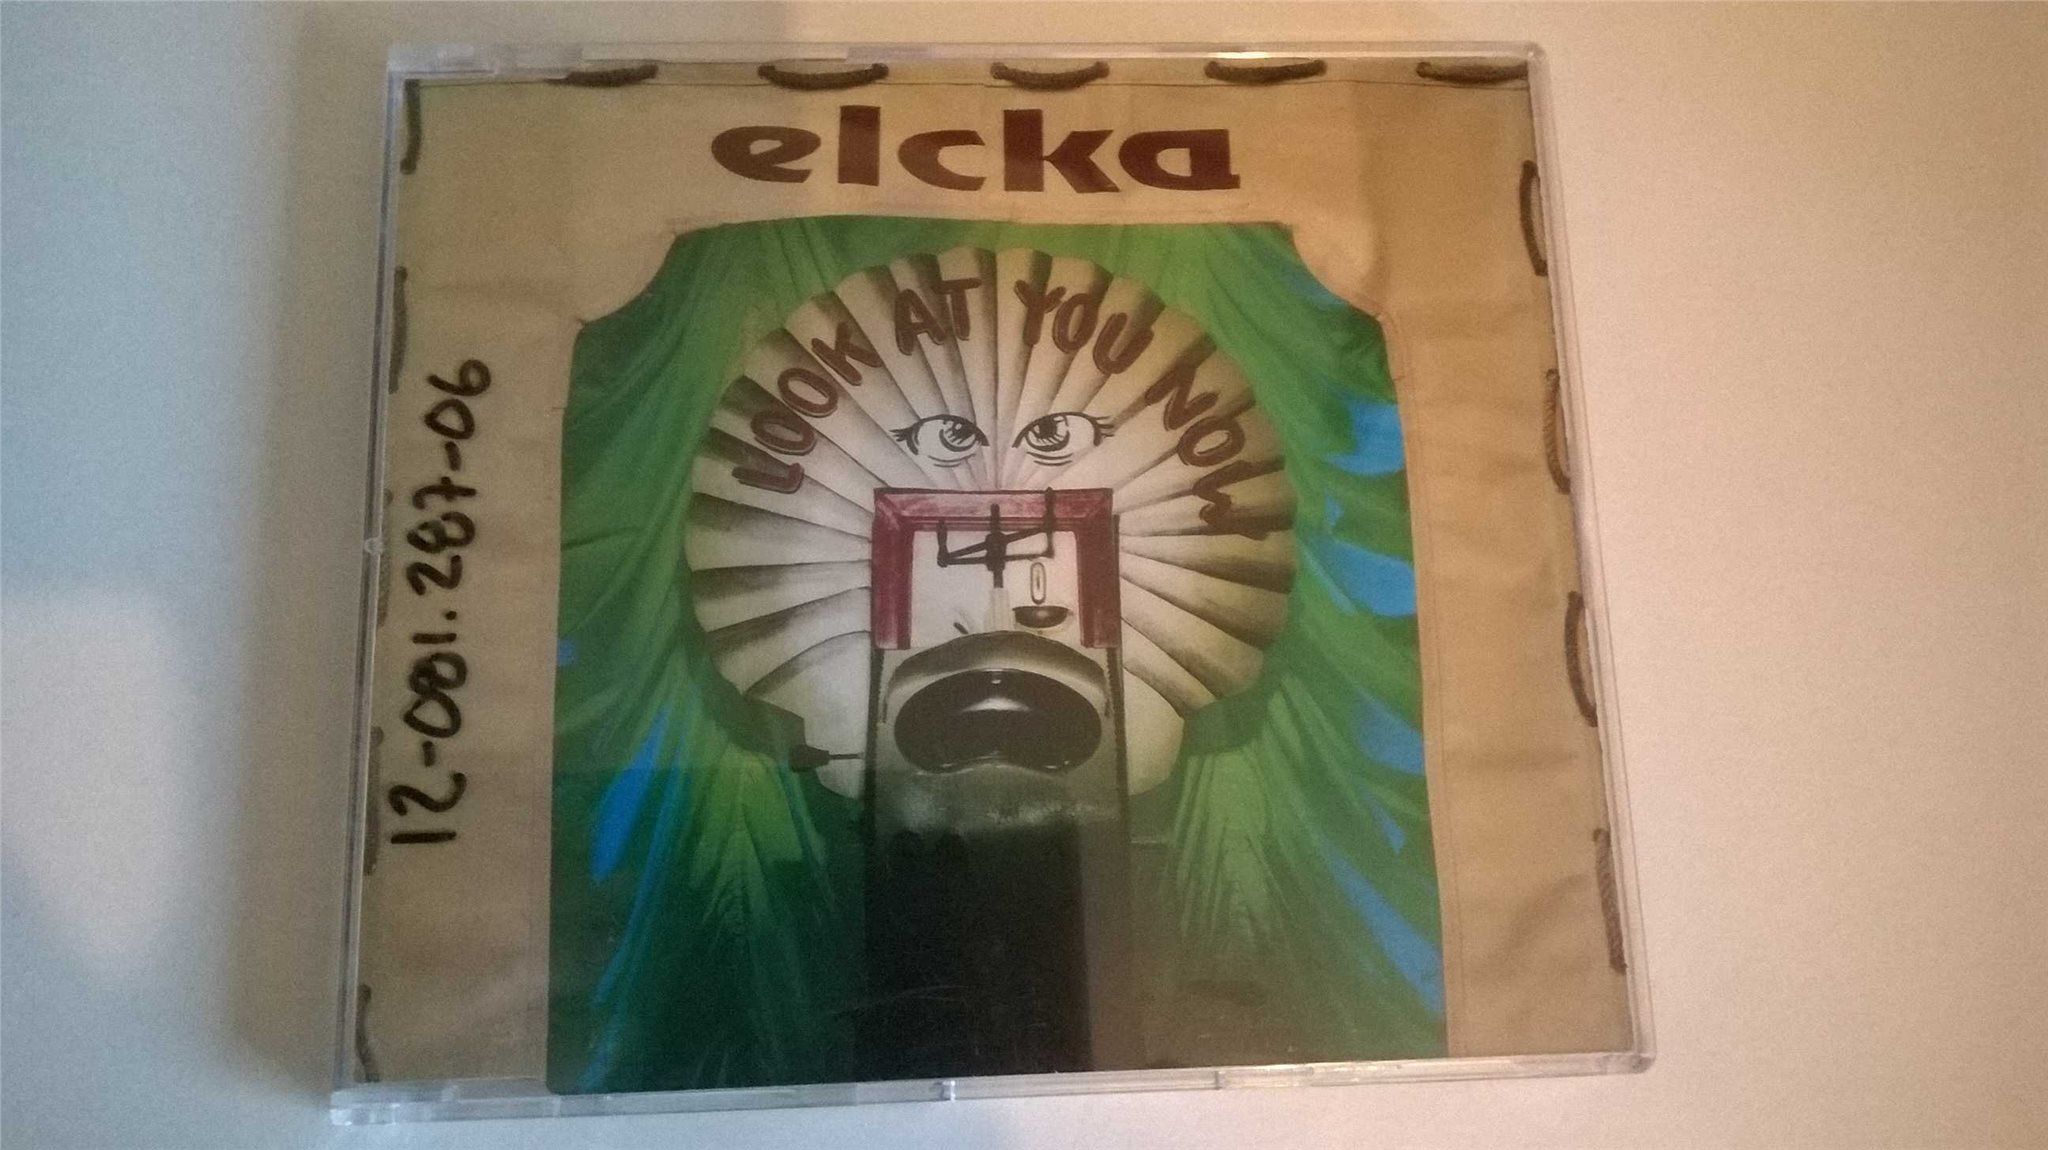 Elcka - Look At You Now, CD